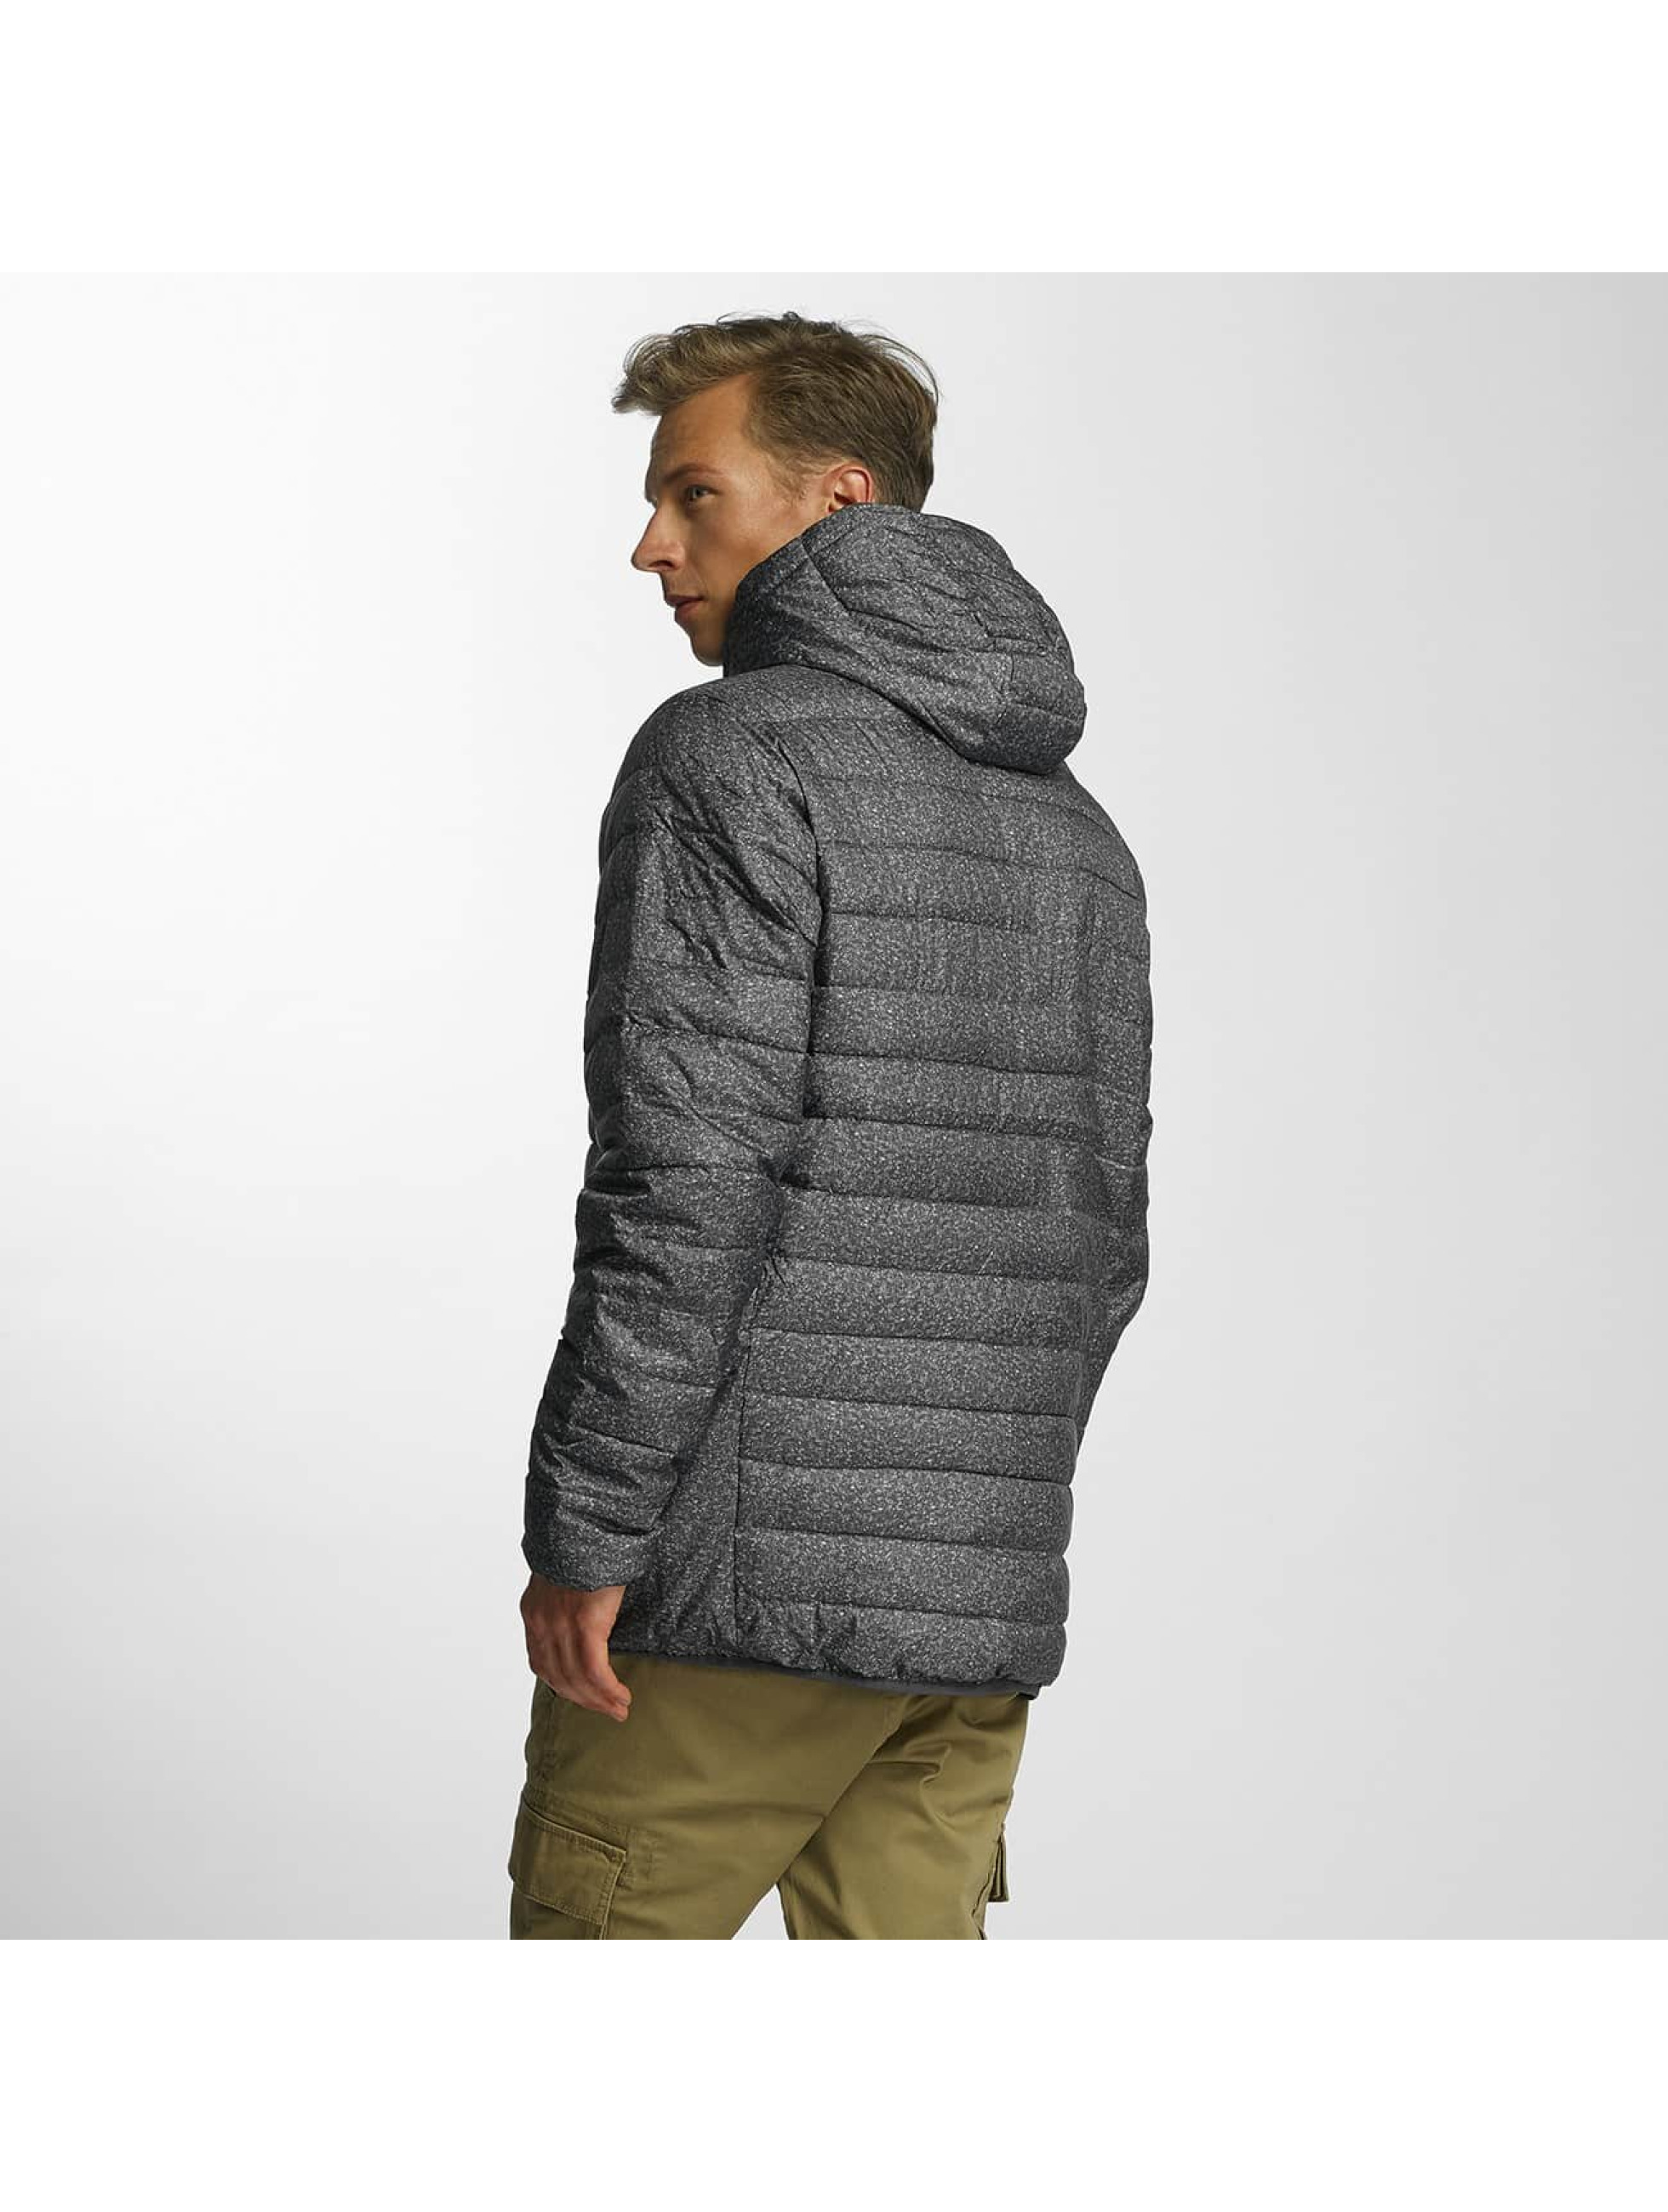 Quiksilver Chaqueta de invierno Everyday Scaly gris